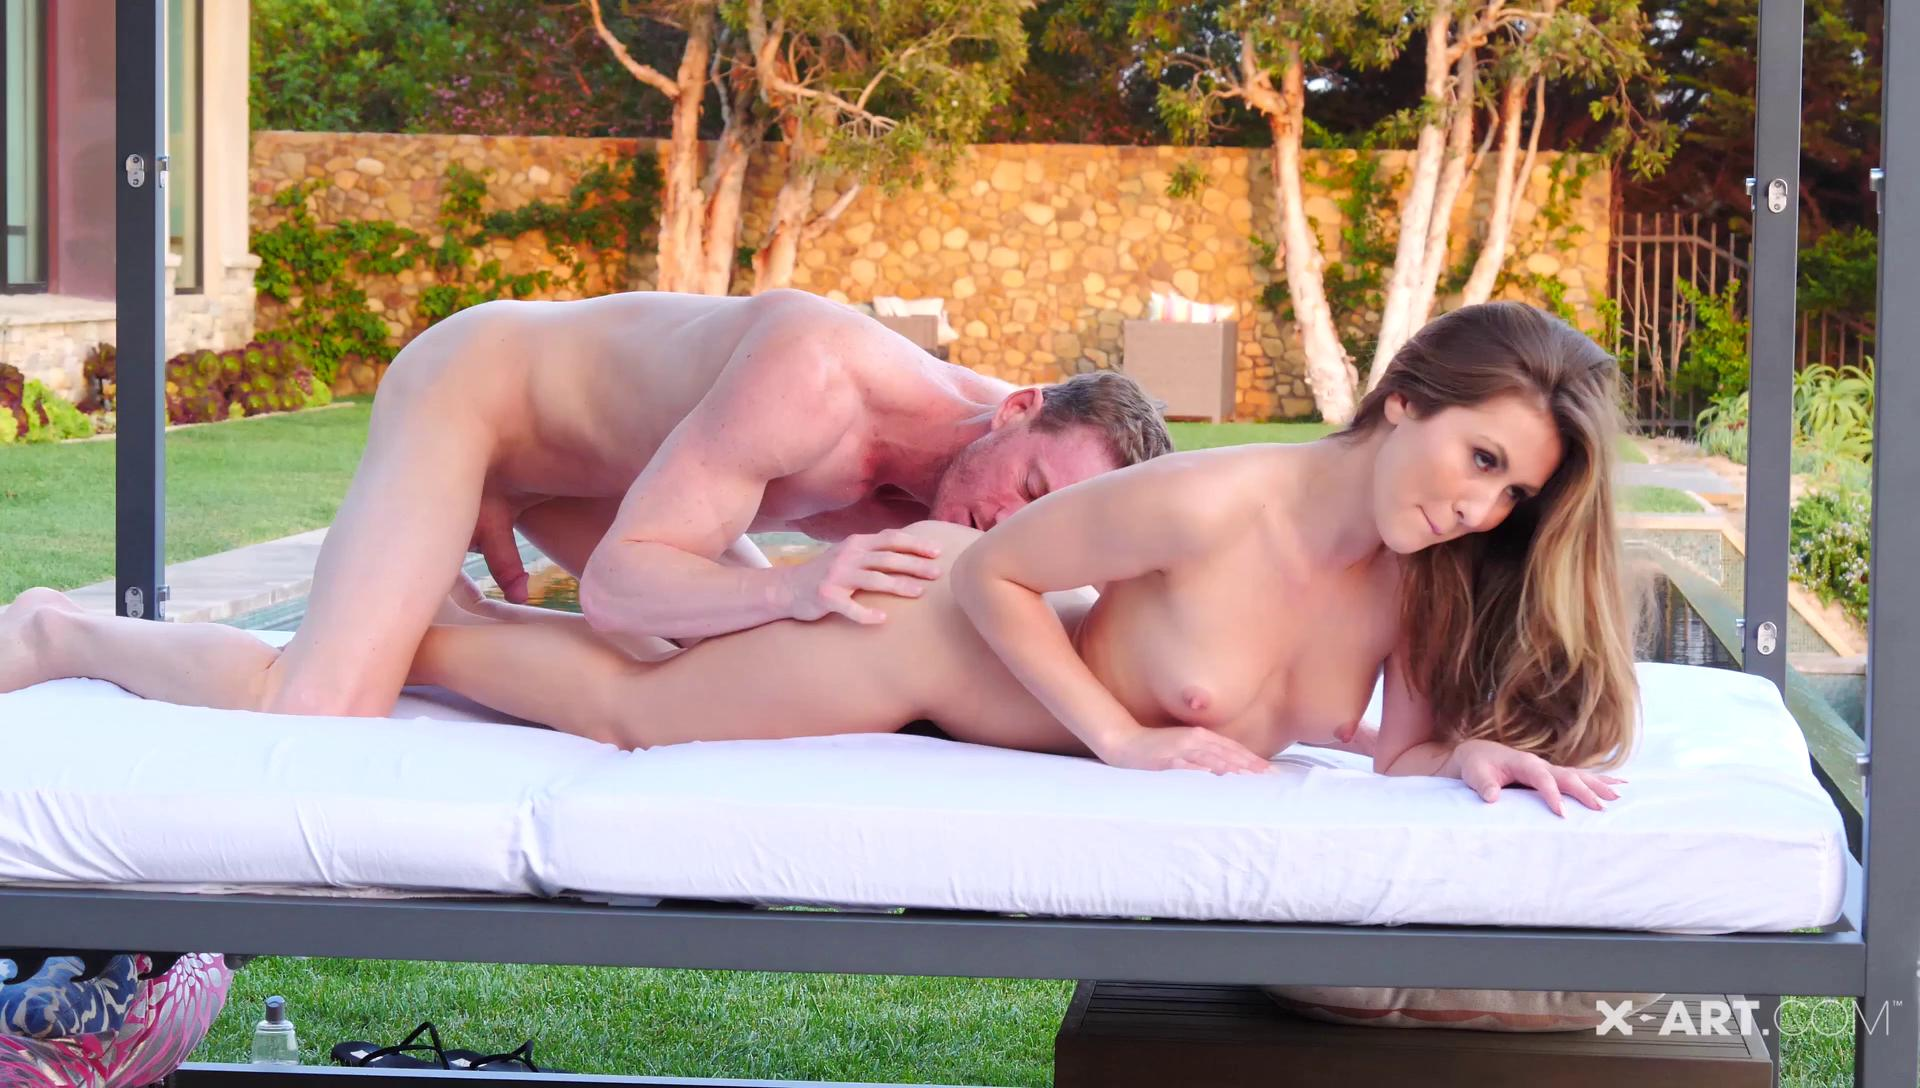 Paige California Couple Cumming